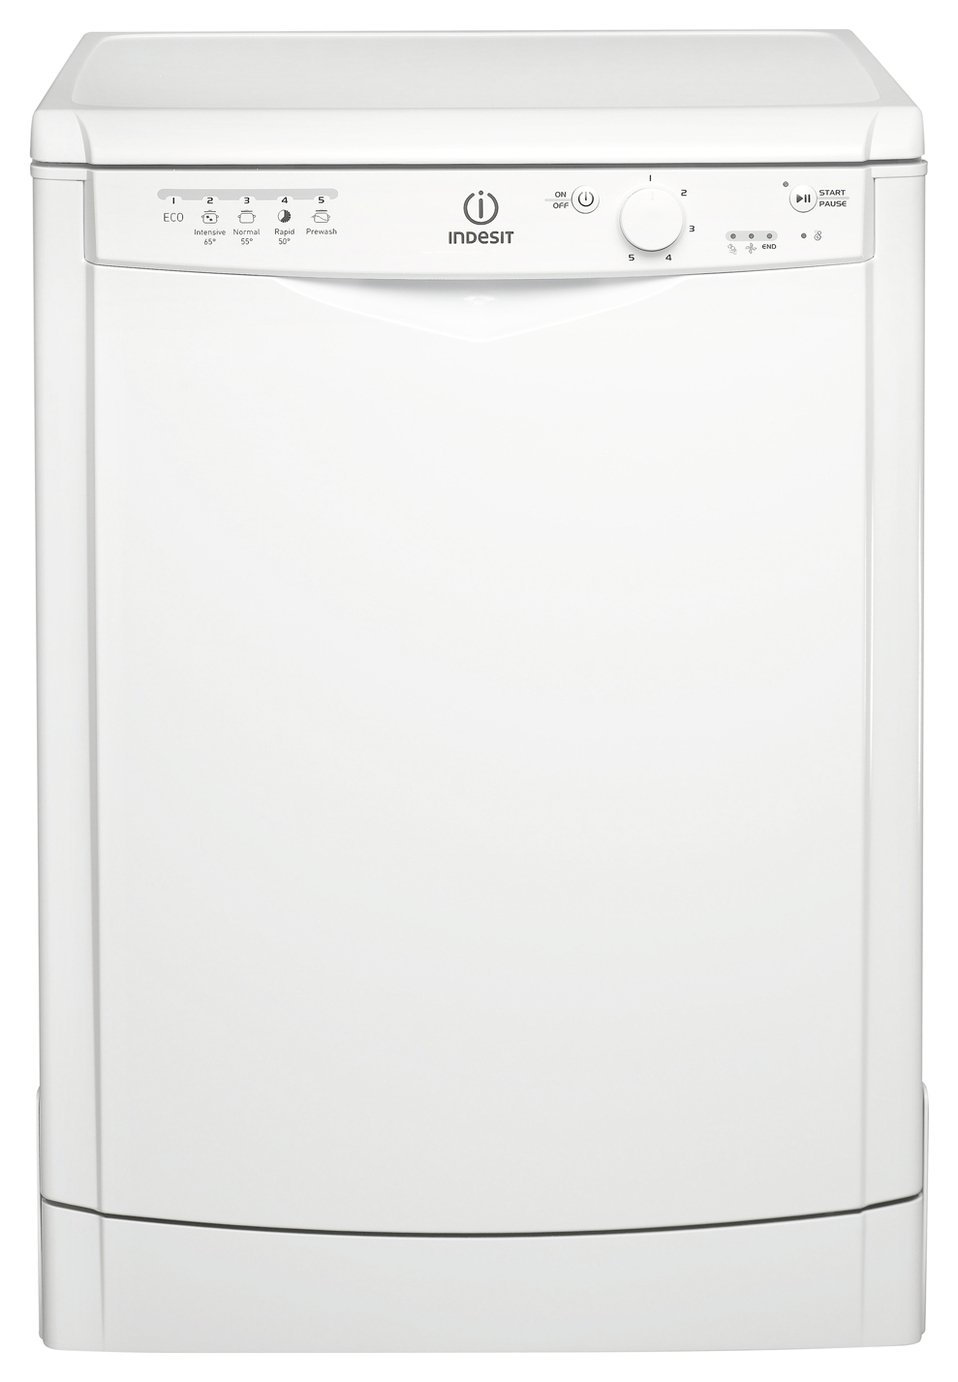 Indesit DFG15B1 Full Size Dishwasher - White from Indesit